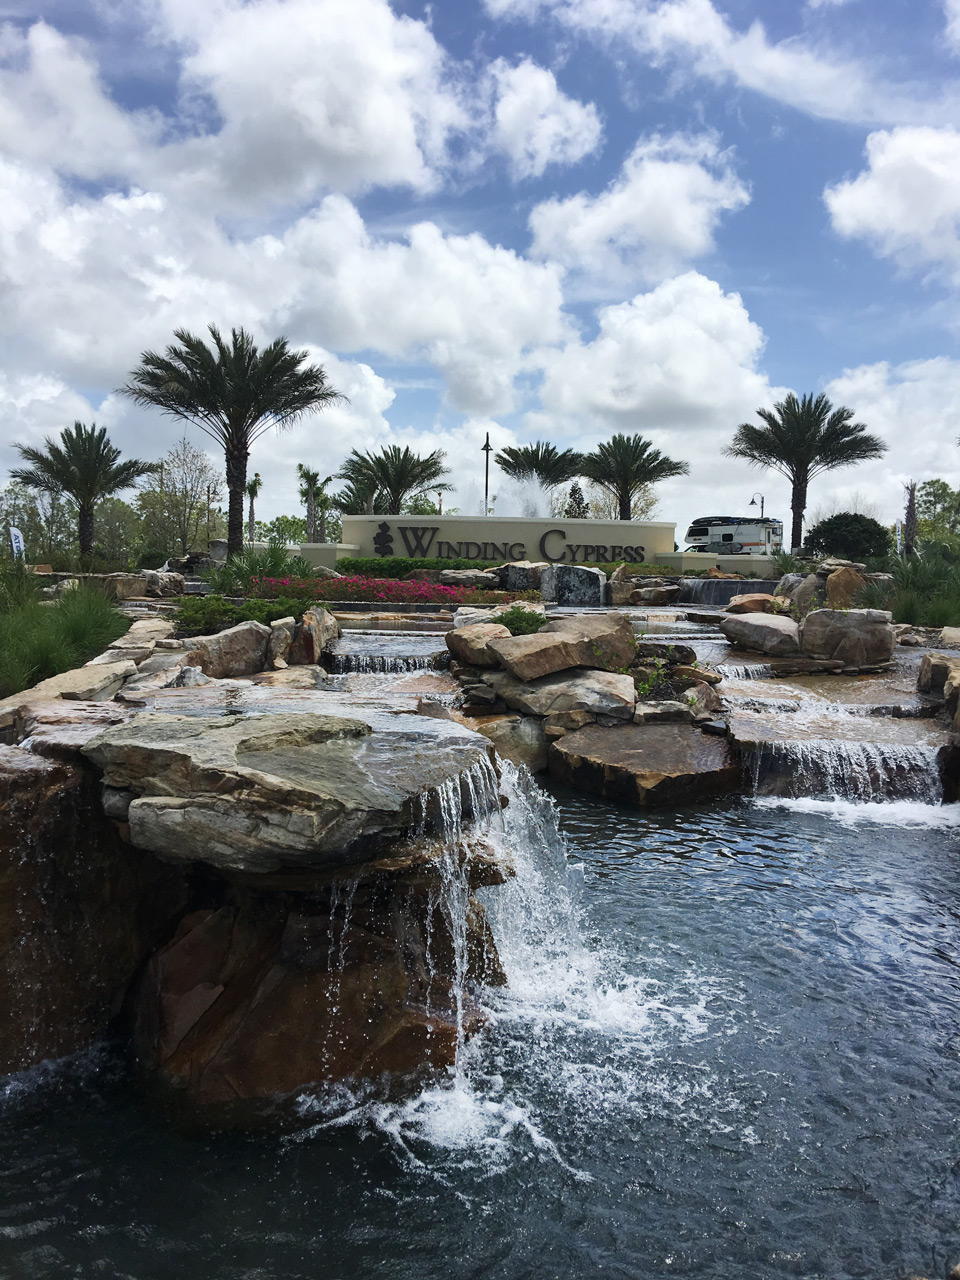 Winding Cypress Naples FL garden entrance and water feature designed and built by Emil Kreye and Son, Inc